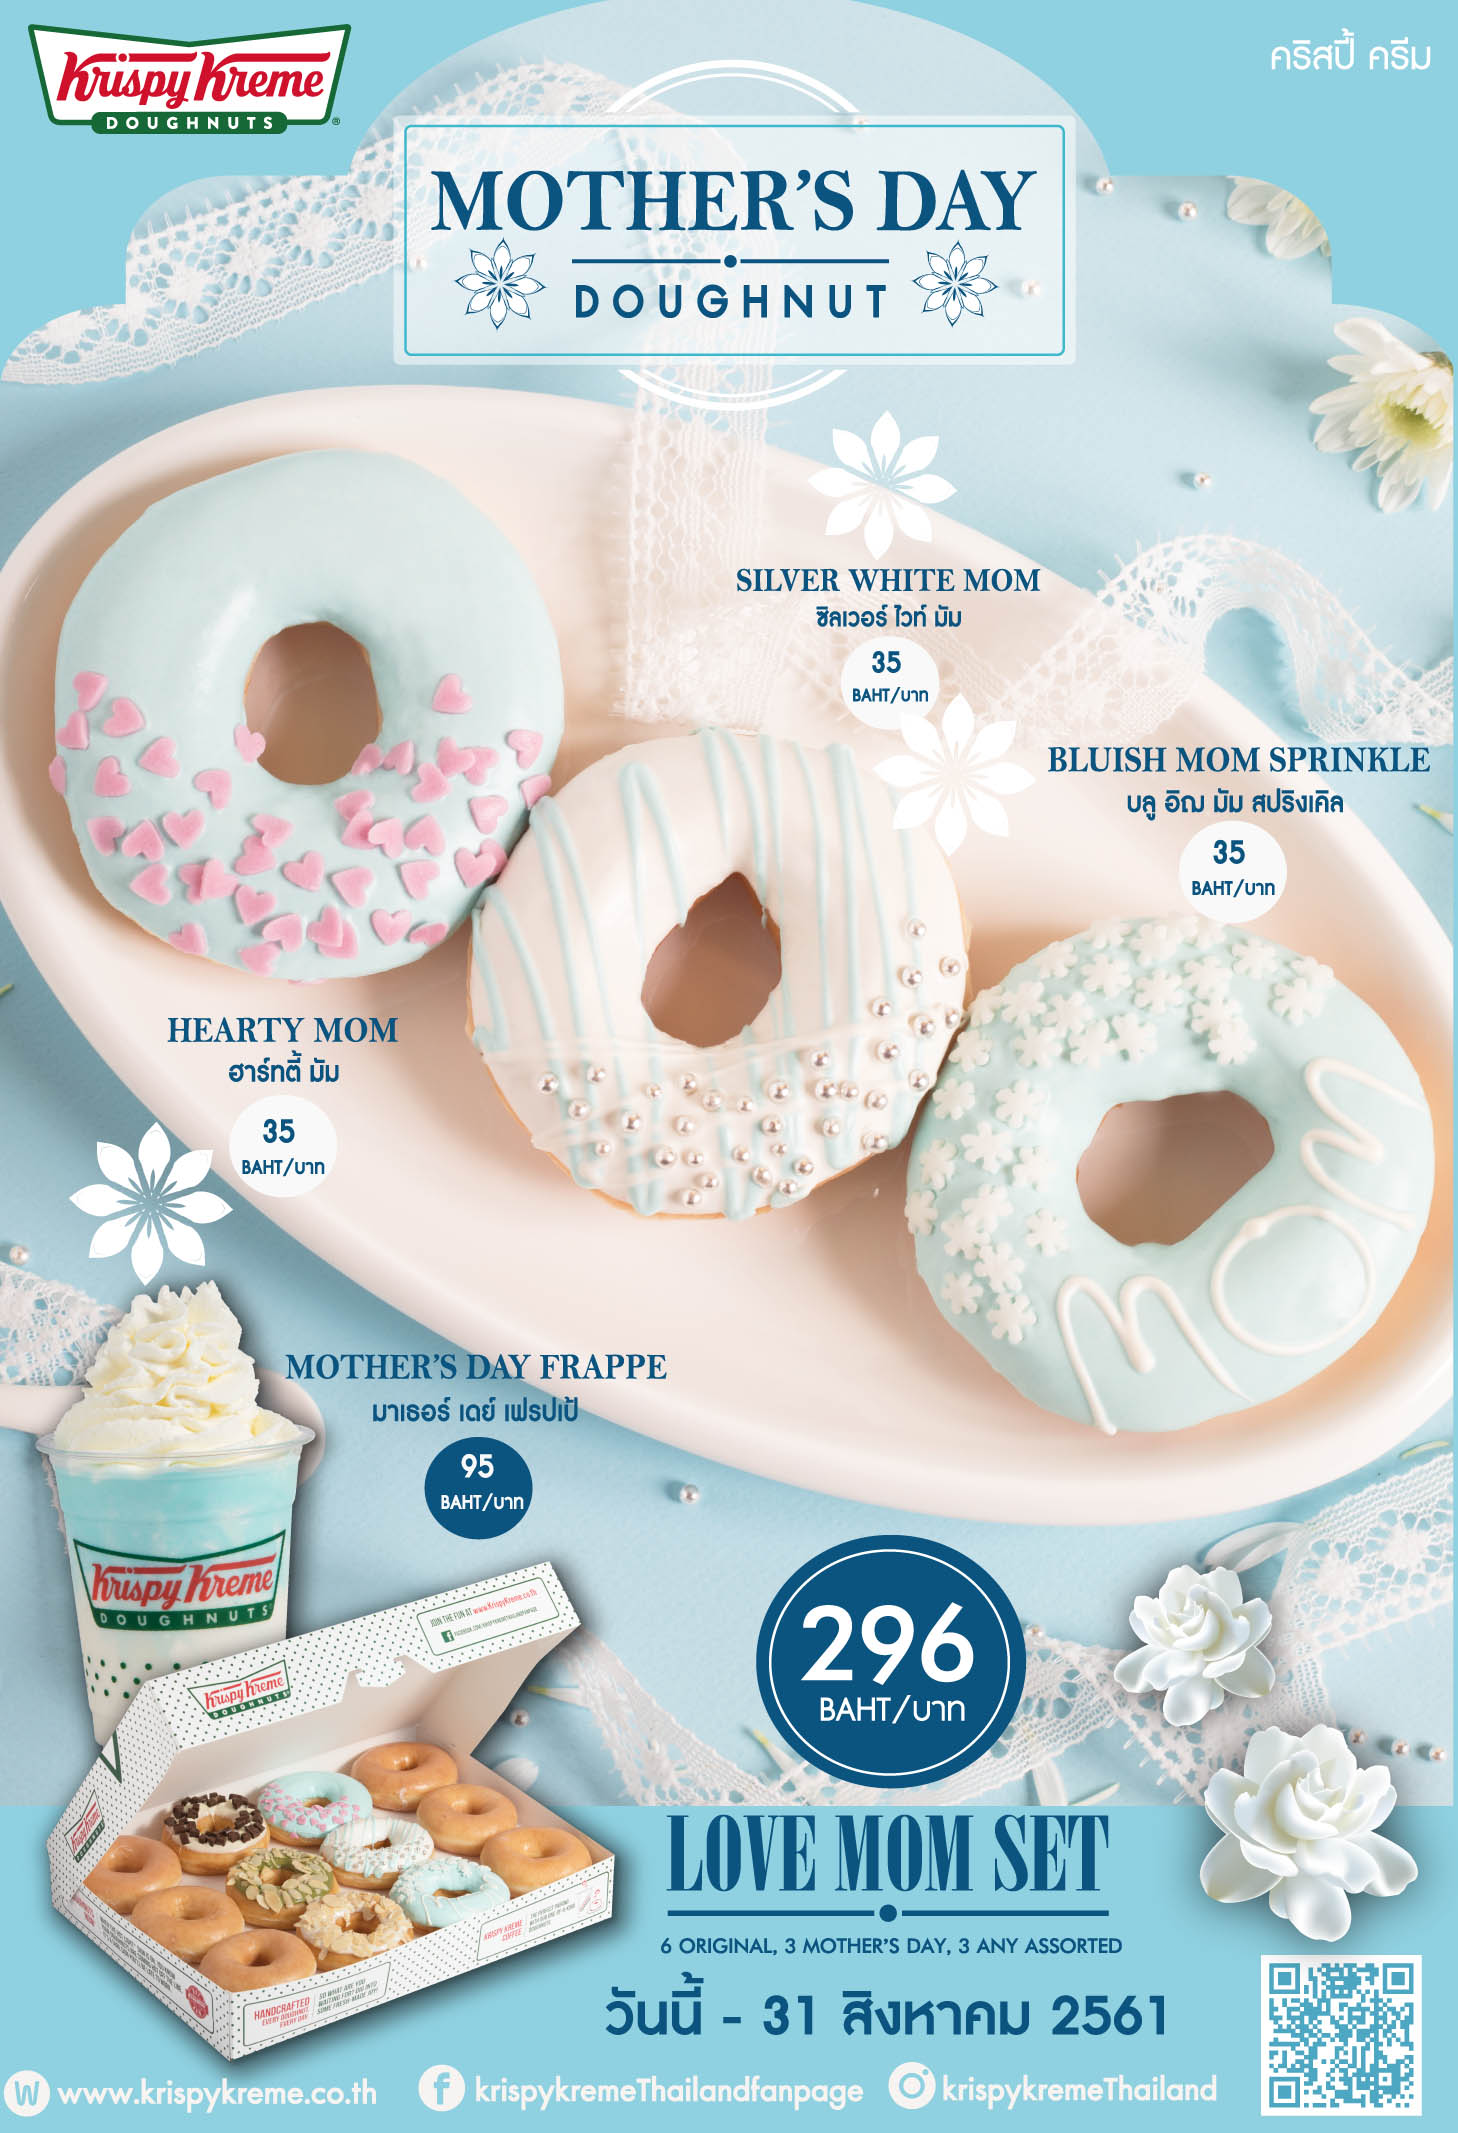 krispykreme_website_07.19.23.2018_motherday_full